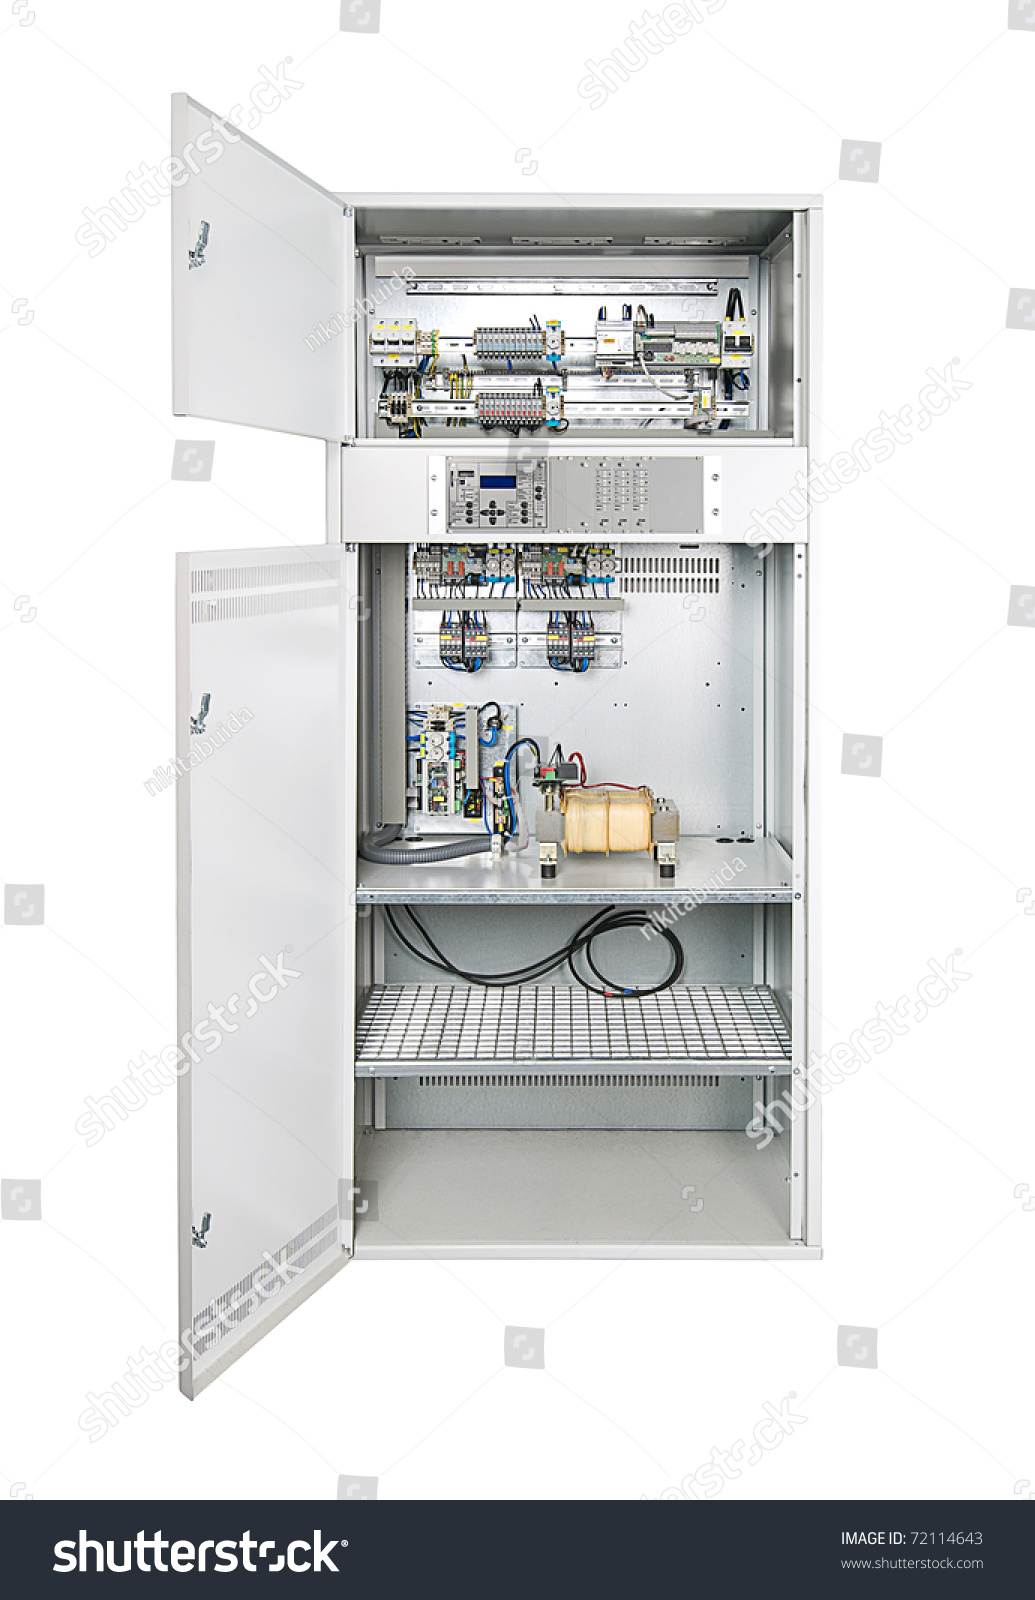 Circuit Breaker Cabinet Electrical Enclosure With Its Door Open Could Be Electrical